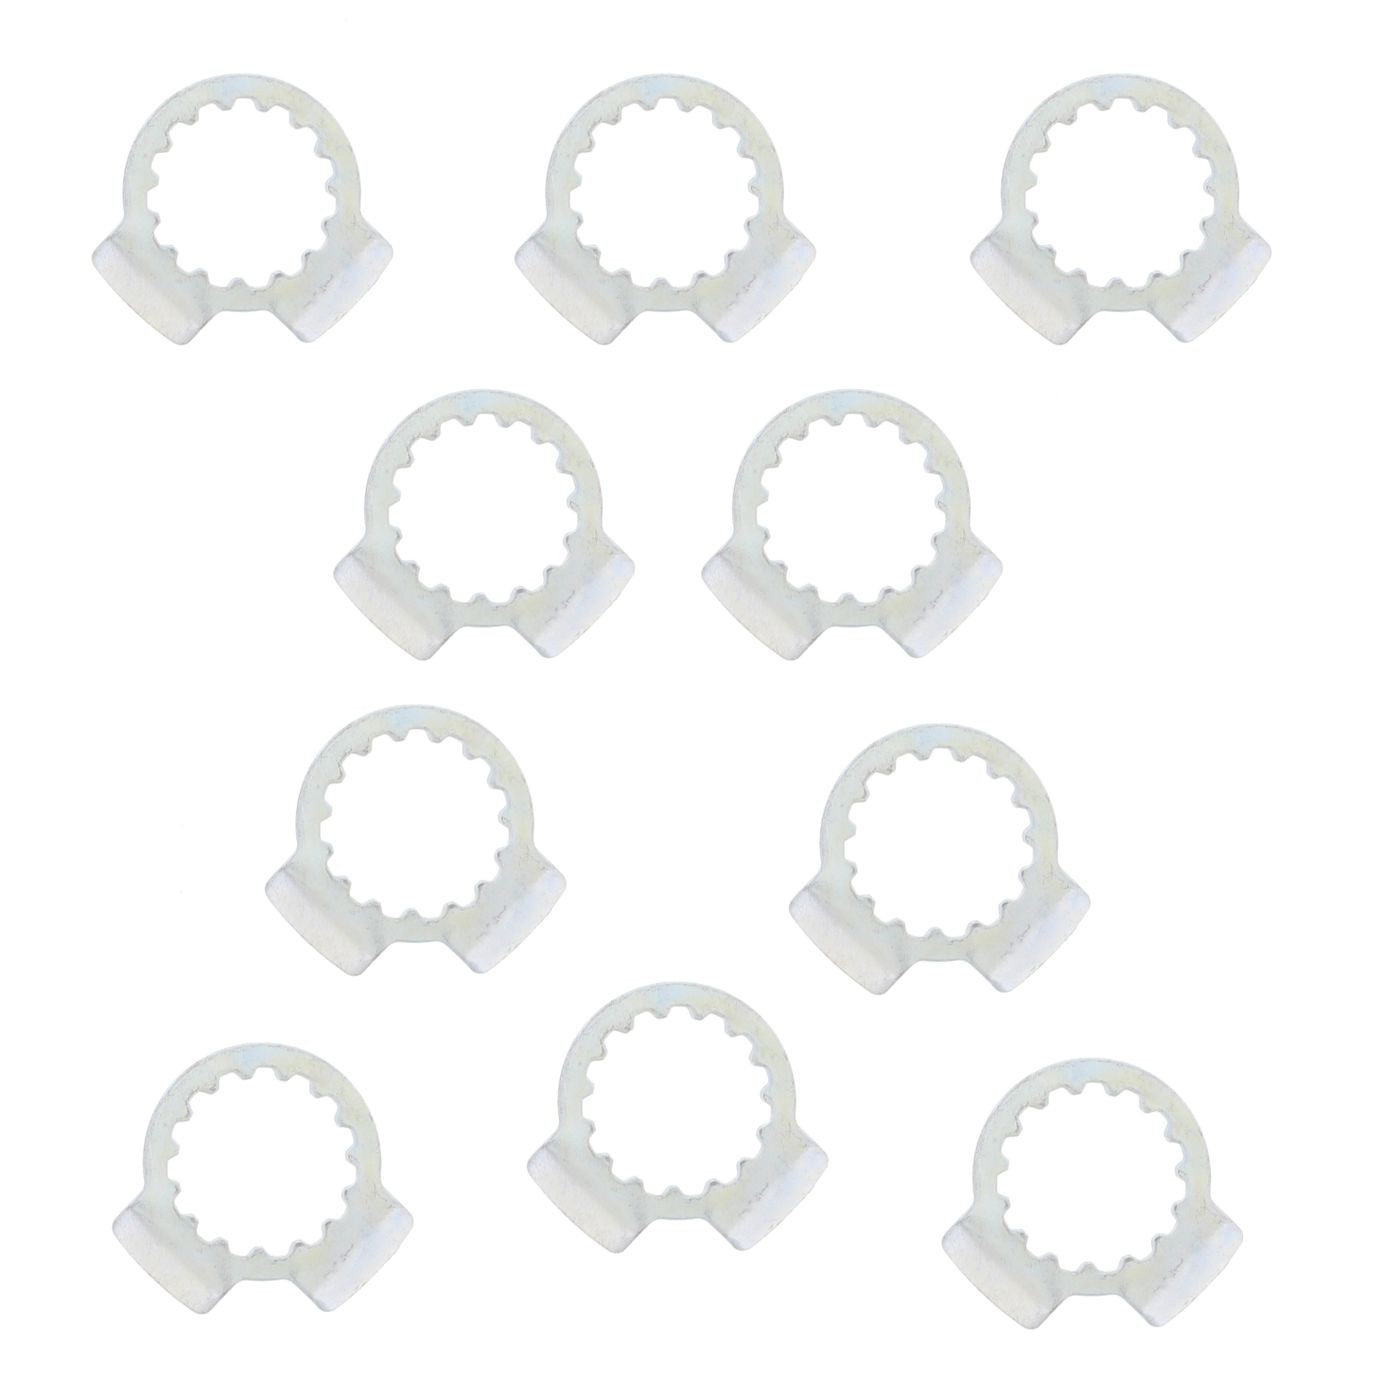 Wrp Front Sprocket Retainers - WRP256003 image